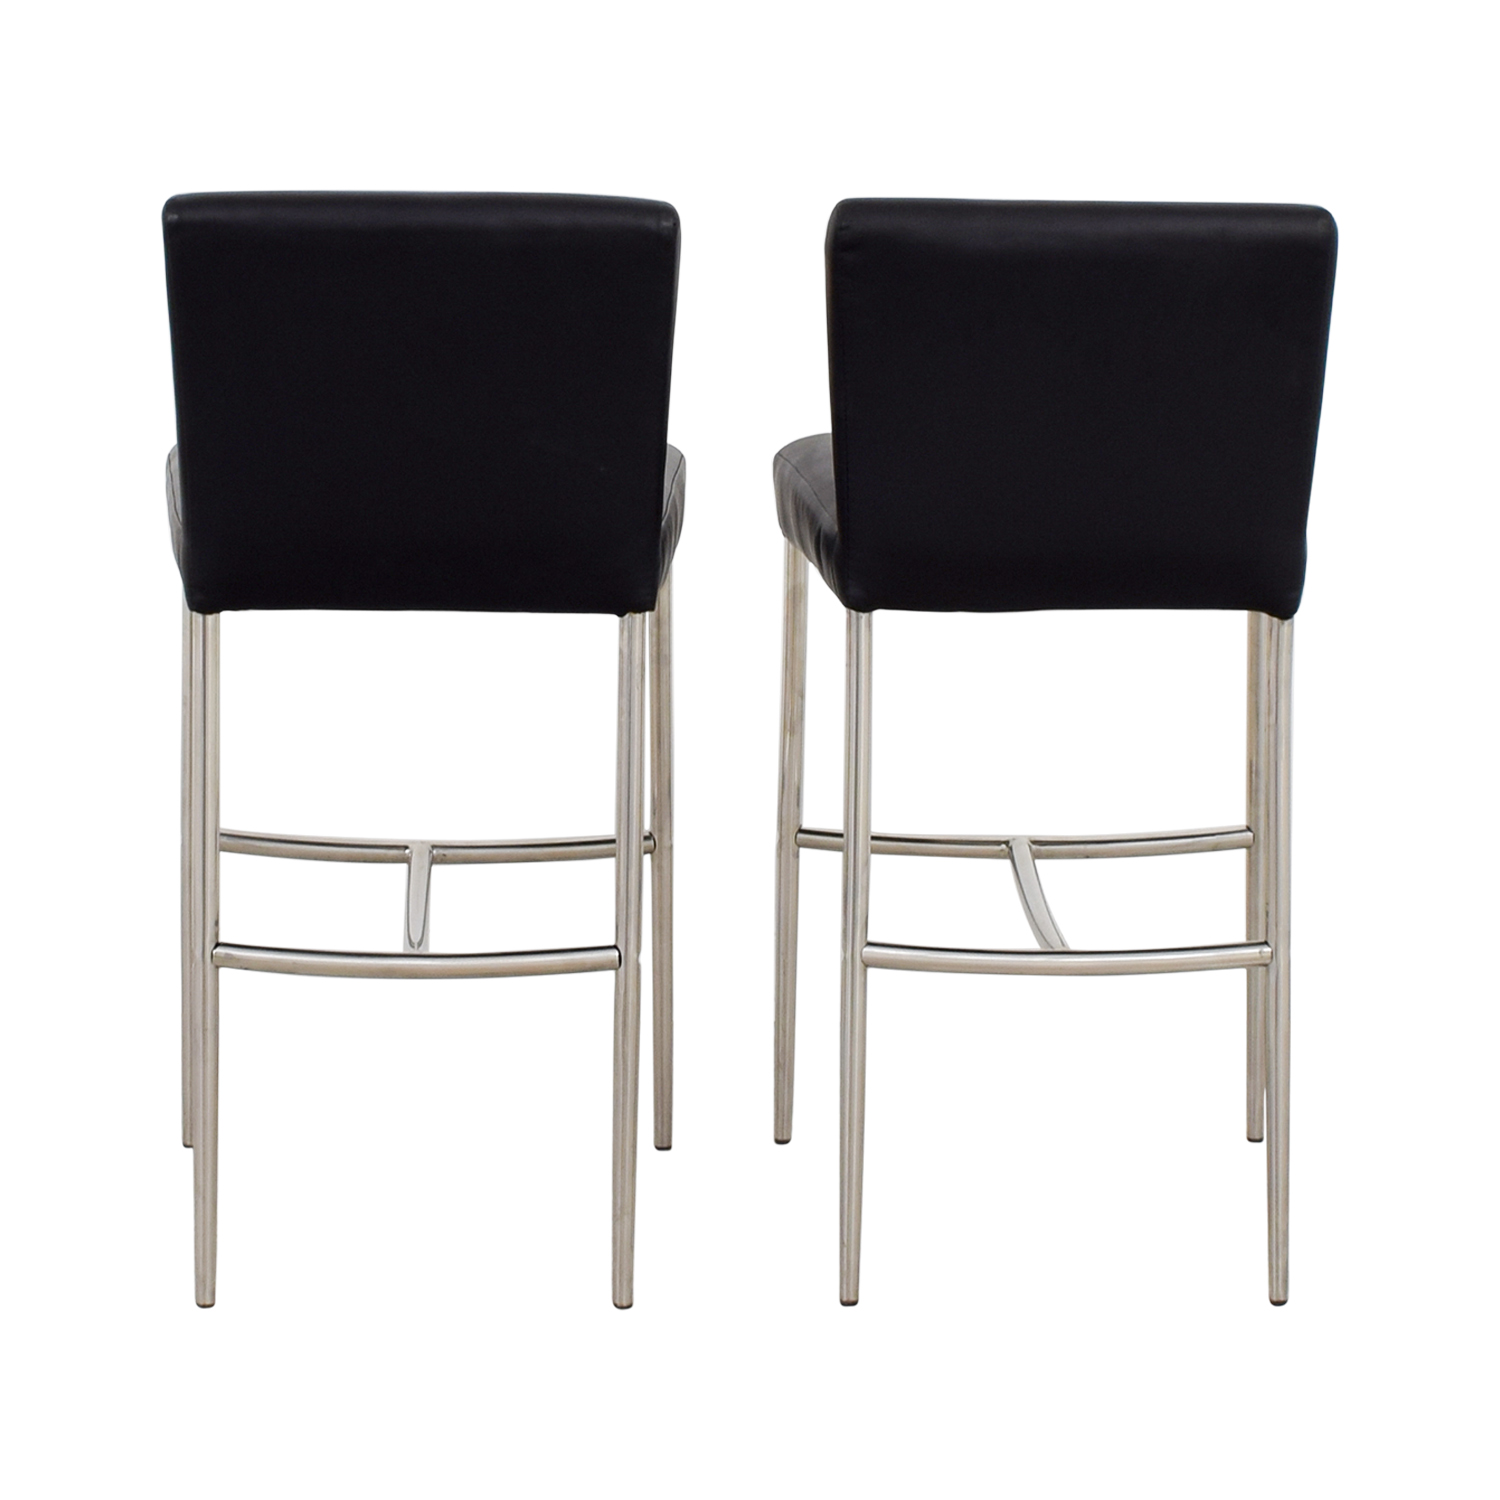 Counter Height Black Leatherette Chairs nj